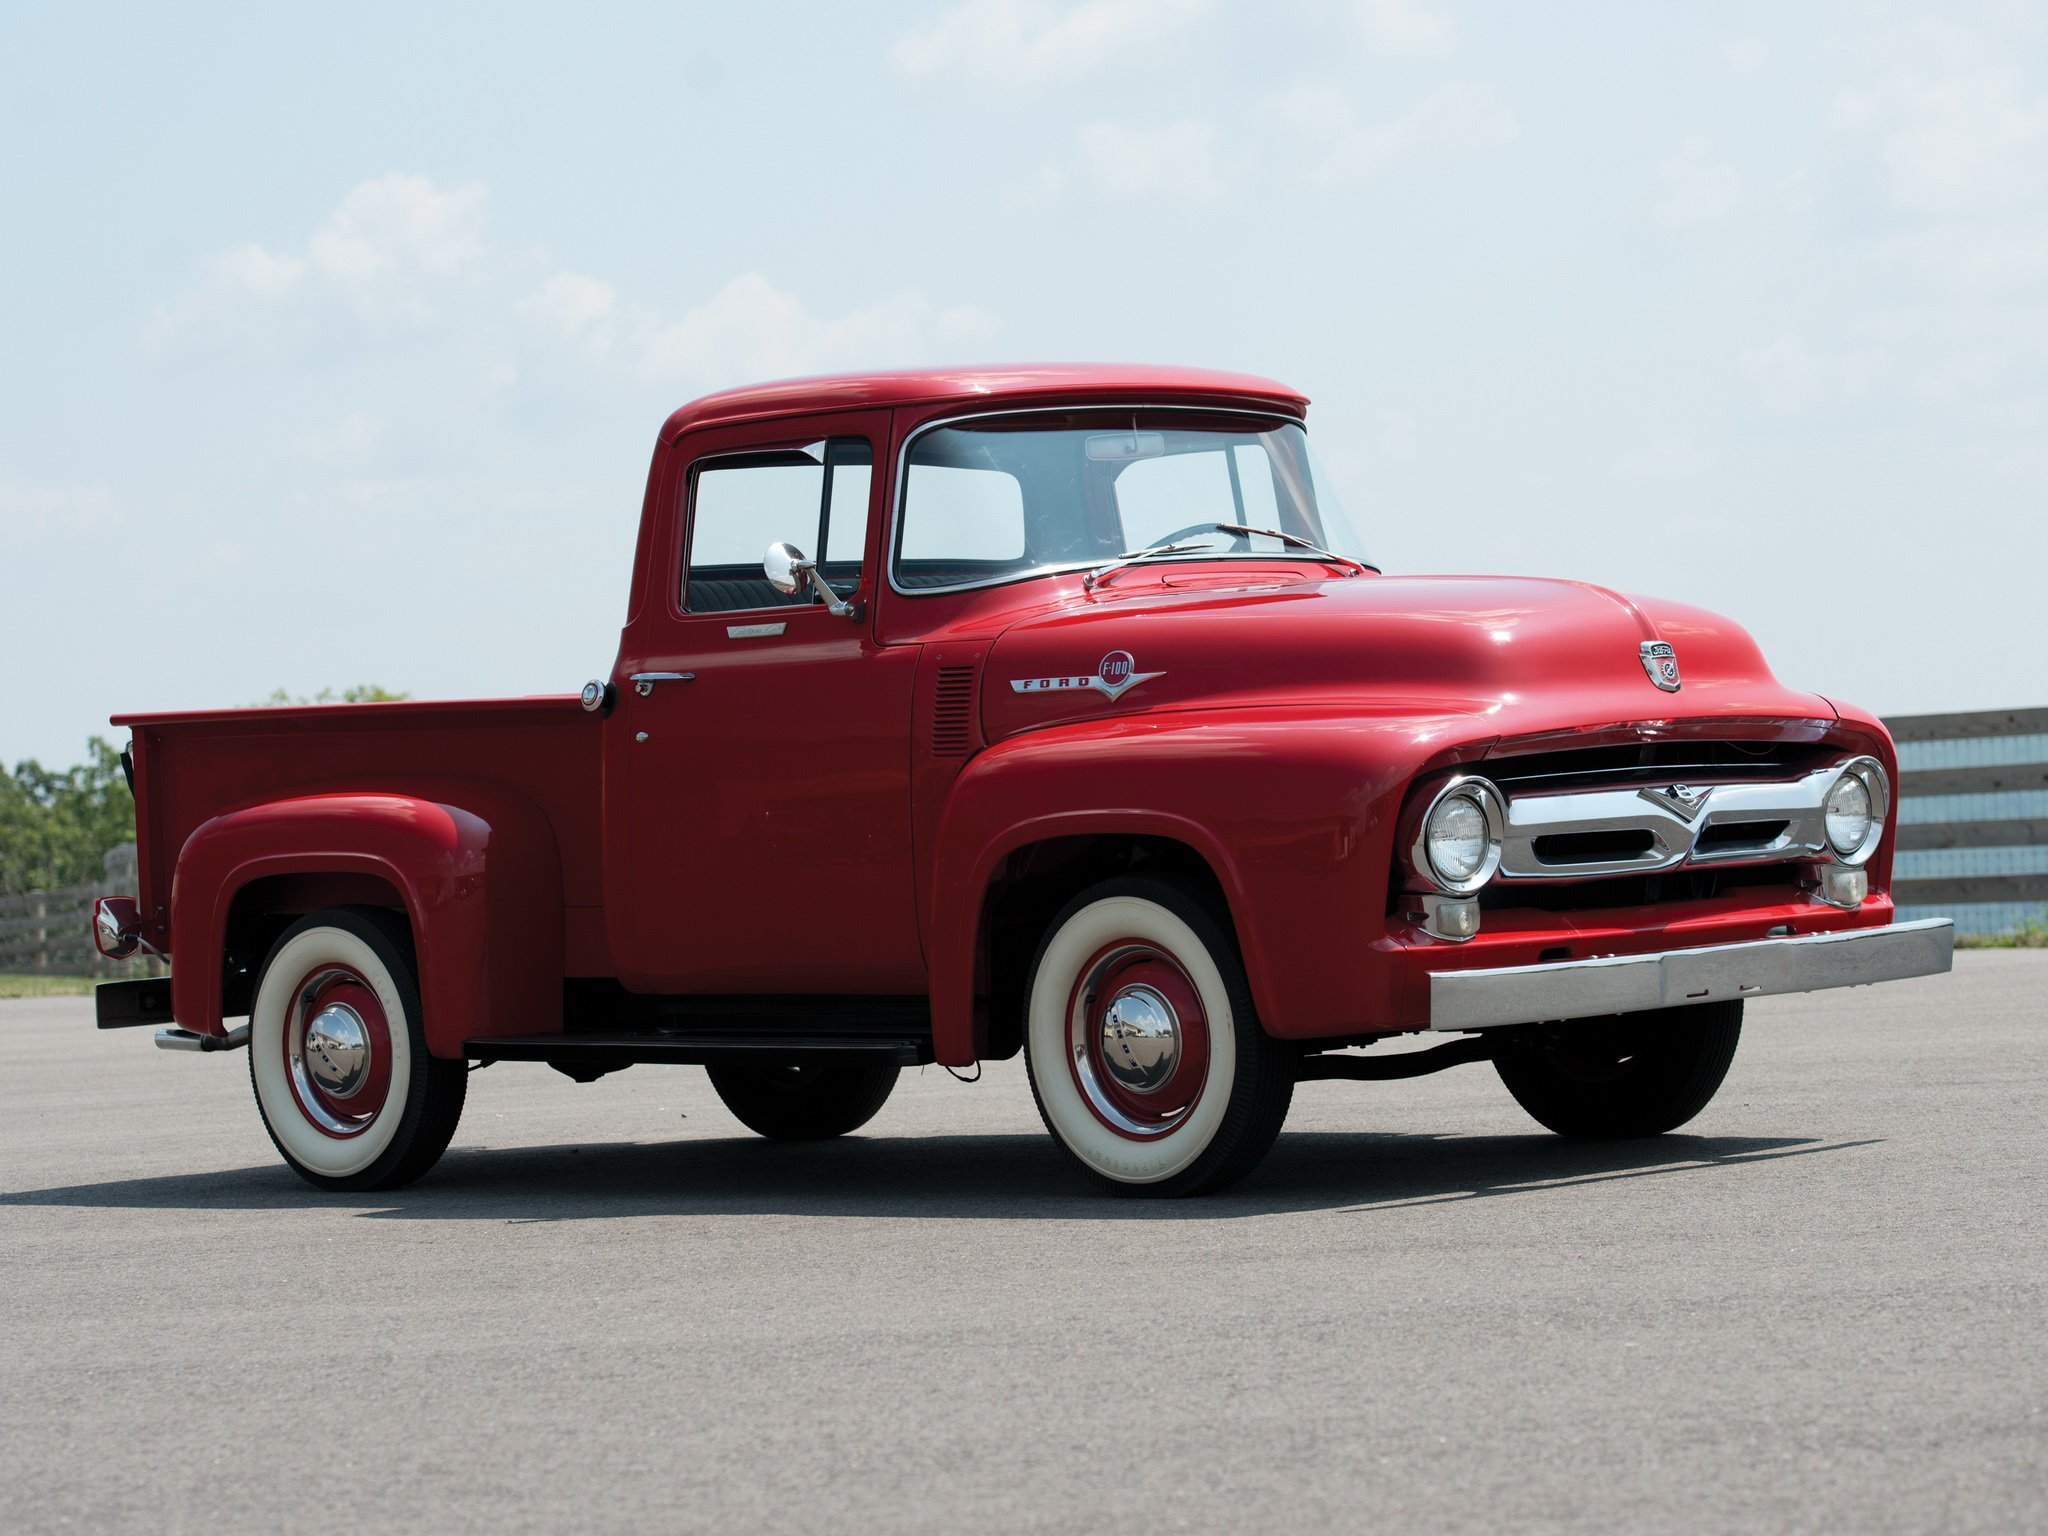 1956 ford f 100 custom cab pickup f100 retro wallpaper. Black Bedroom Furniture Sets. Home Design Ideas